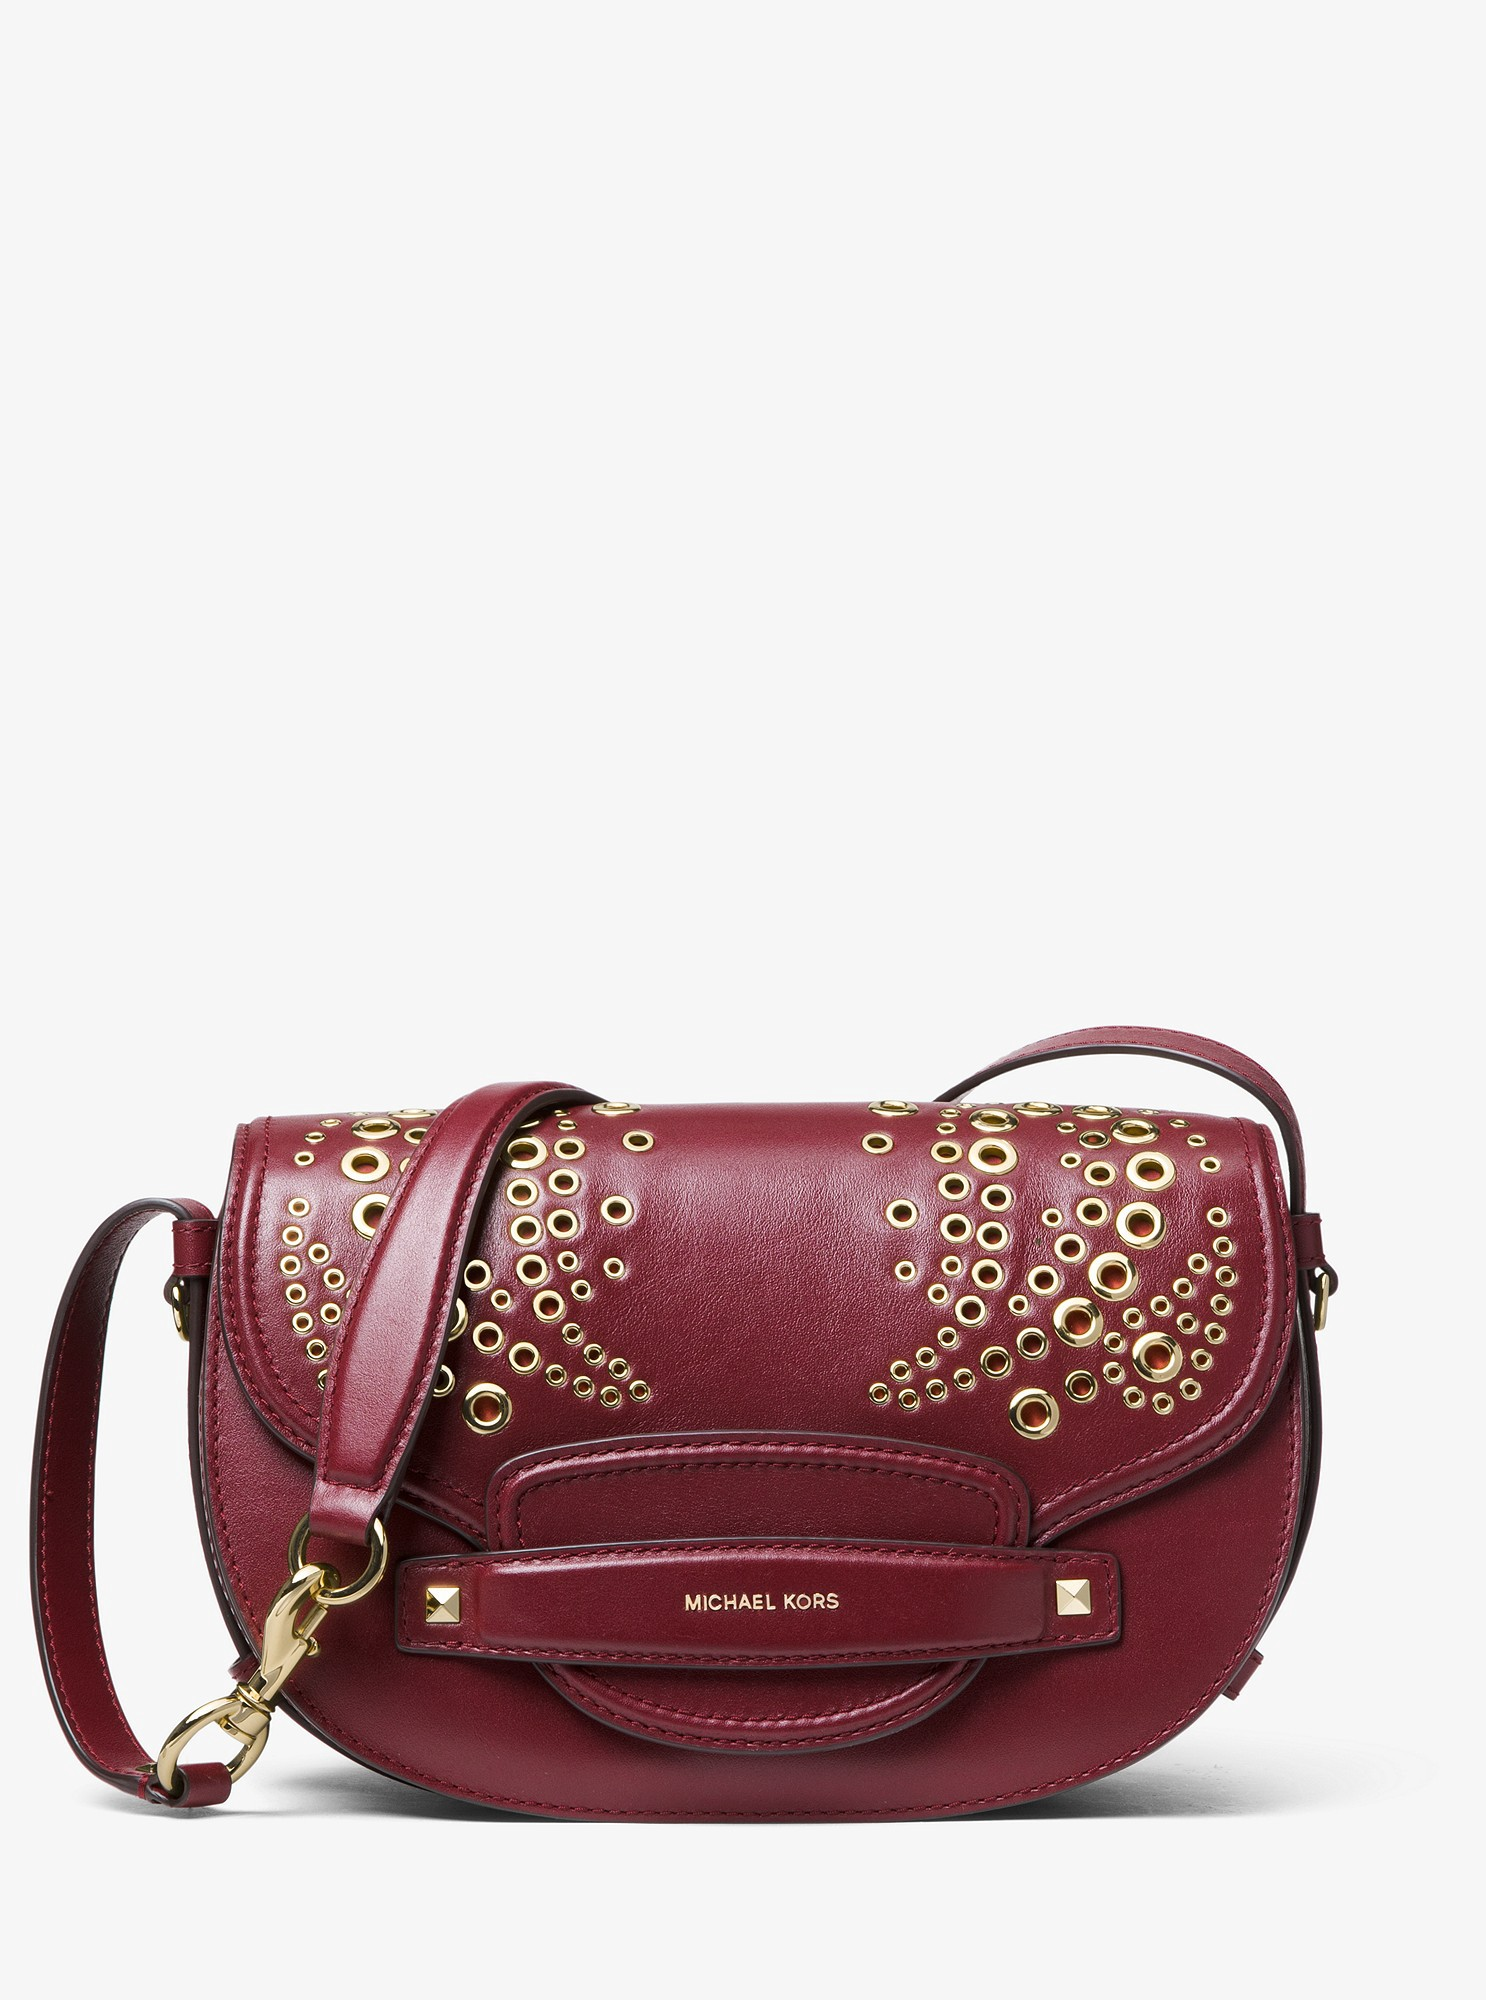 7861cb202f55 Cary Medium Grommeted Leather Saddle Bag by Michael Kors | Products ...